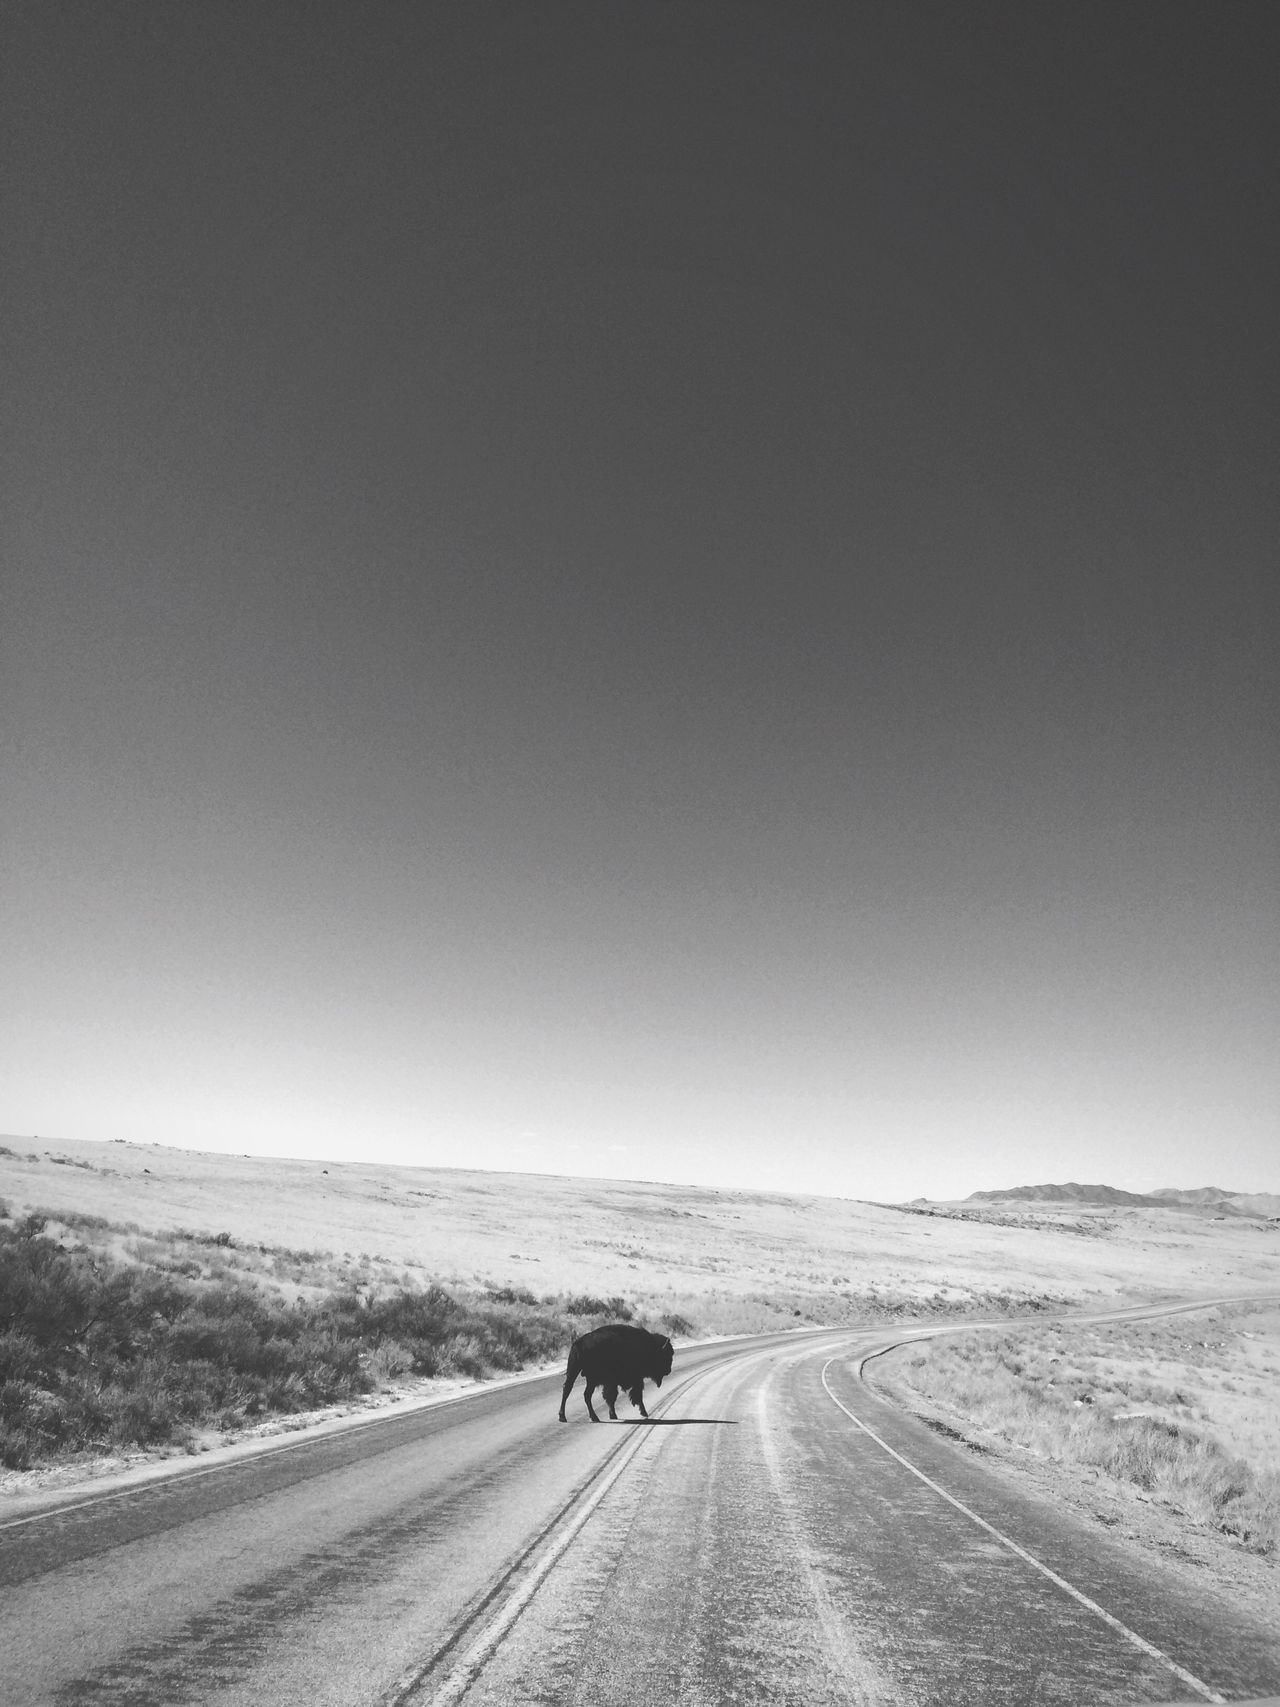 Just a lone bison in the middle of the road. Road Clear Sky The Way Forward Copy Space Full Length Road Marking Tranquil Scene Rear View On The Move Landscape Men Vanishing Point Diminishing Perspective Non-urban Scene Mode Of Transport Day Tranquility Solitude Travel Destinations Buffalo Bison Remote Nature Blackandwhite Transportation